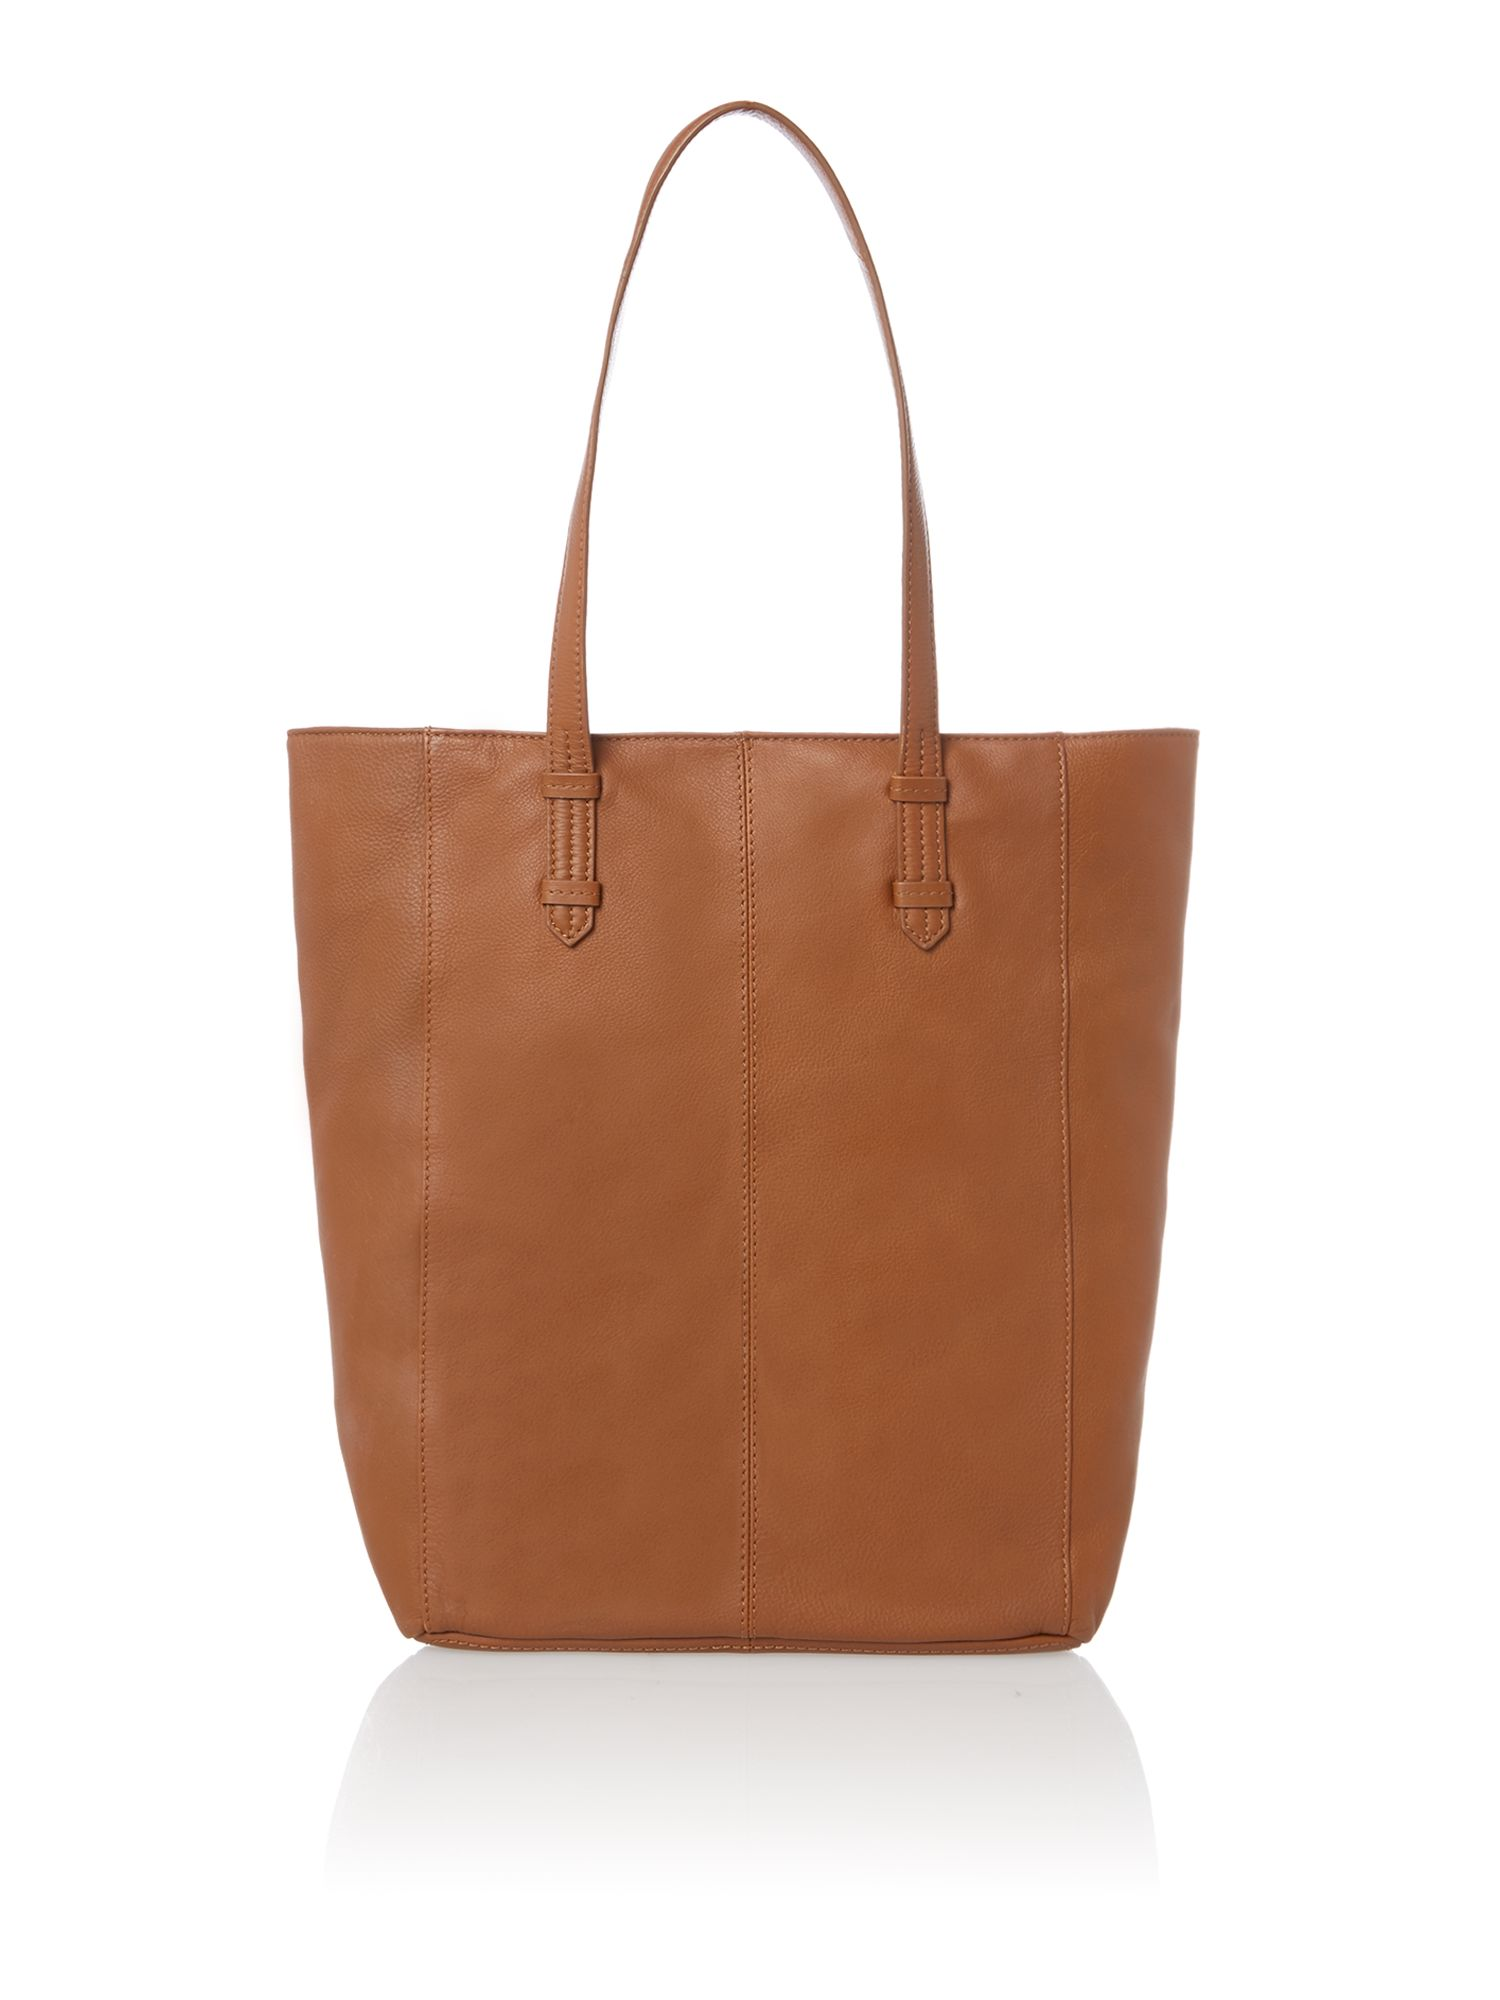 Sandy unlined tote handbag